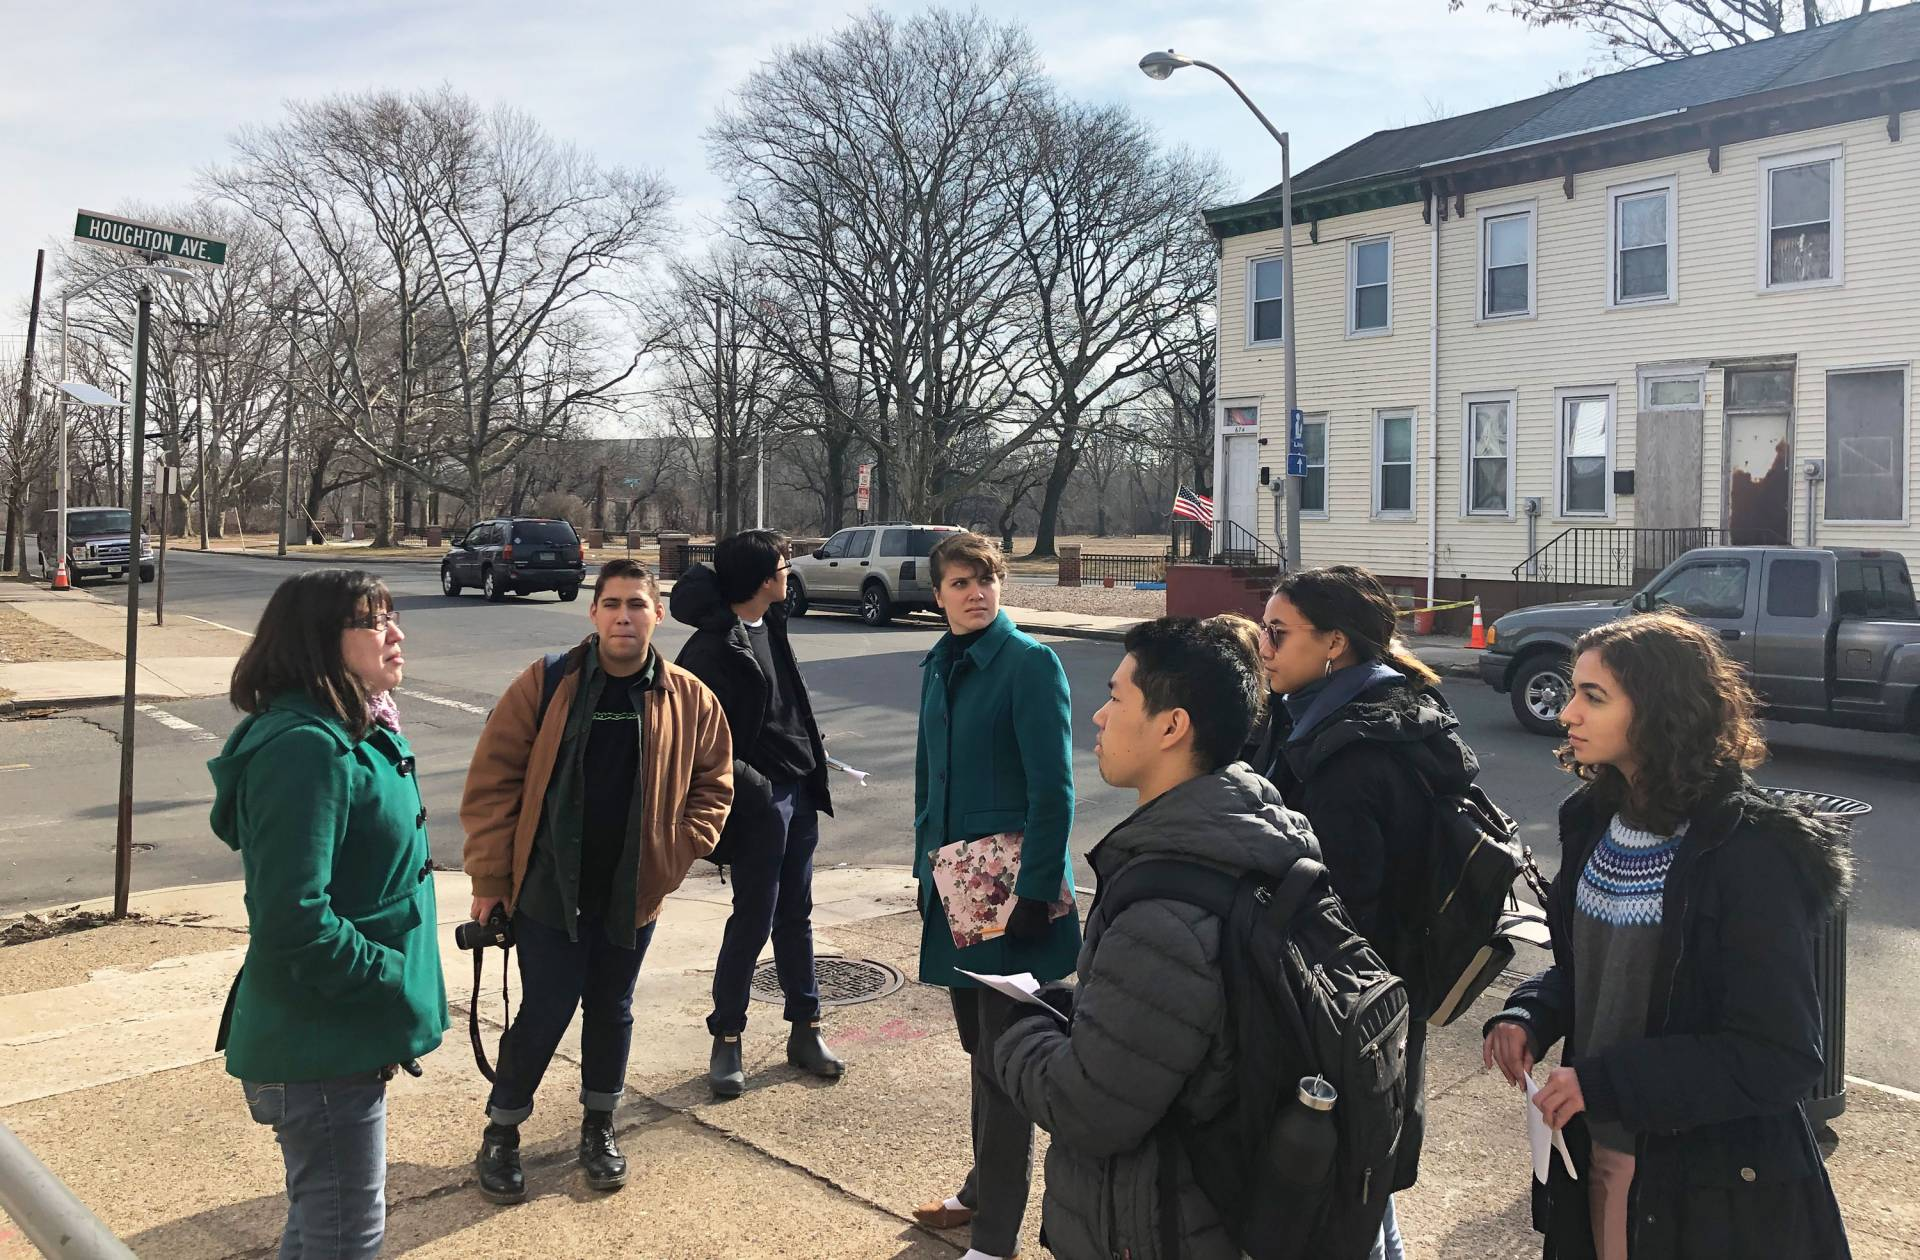 Students on a walking tour in Trenton